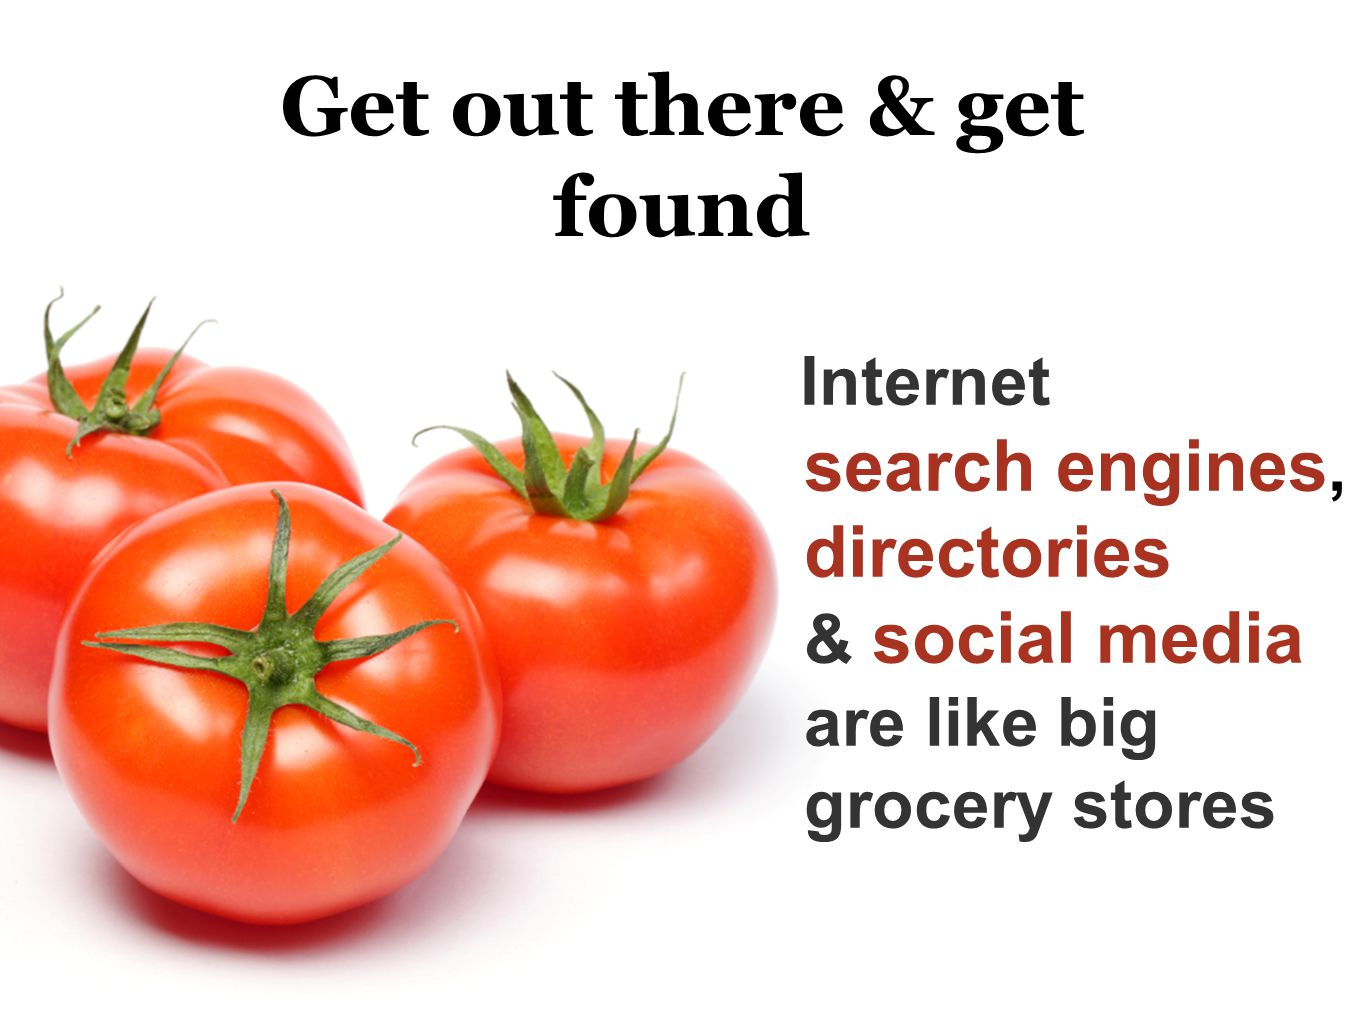 Get out there & get found Internet search engines, directories & social media are like big grocery stores